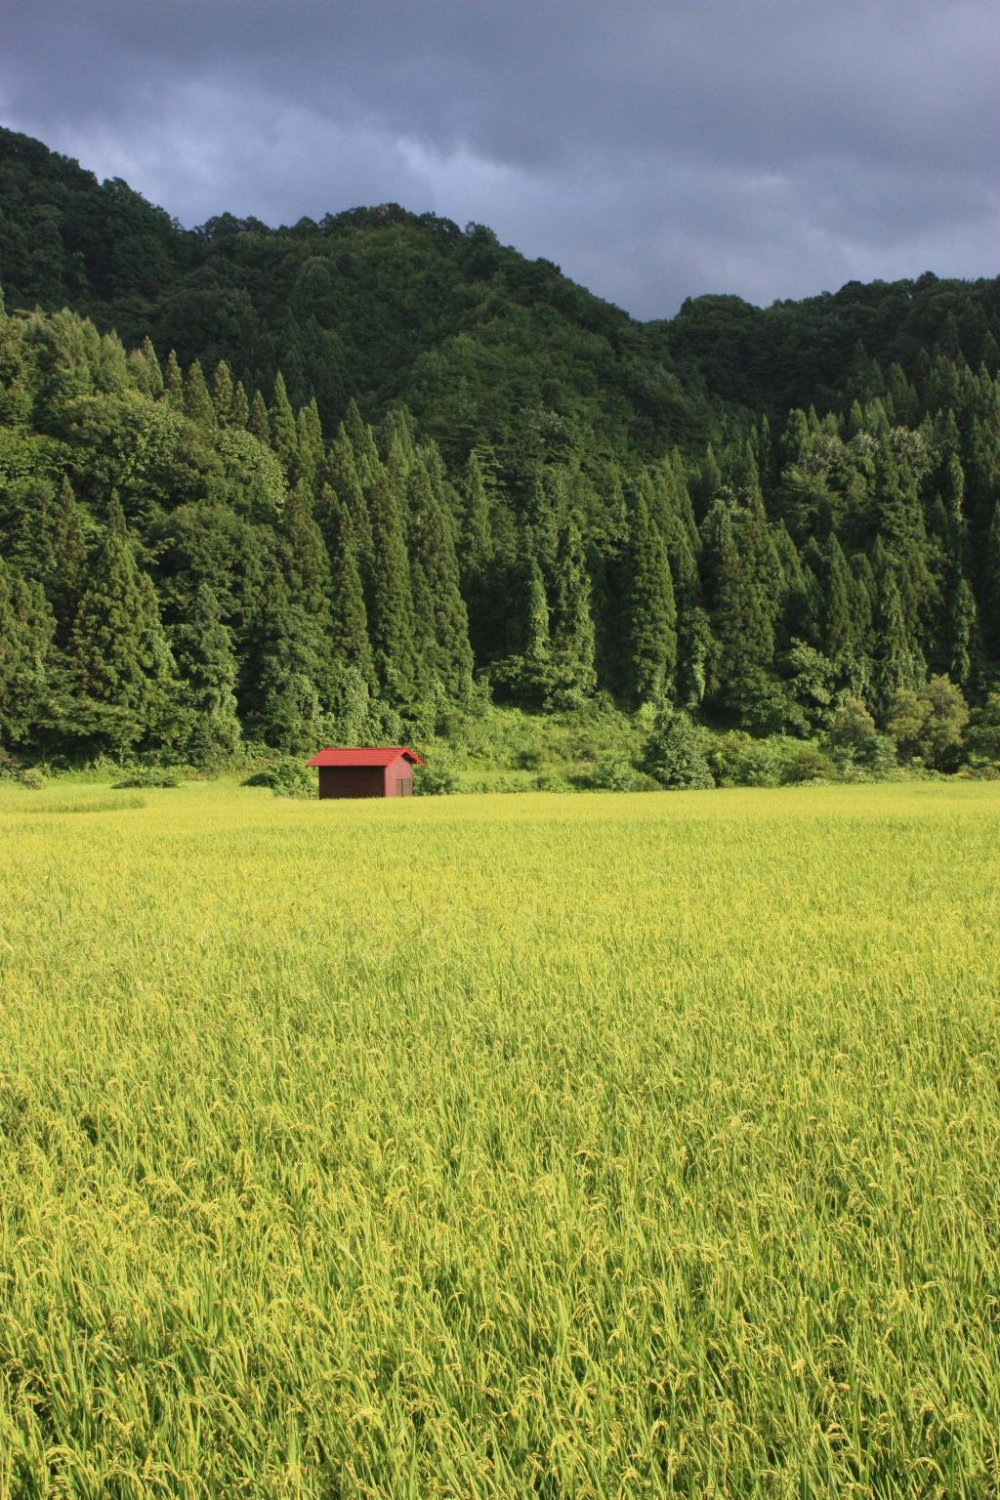 Summer: Dramatic colours before a sudden storm. Kaneyama is famed for its Japanese cedar trees, and thick forests cover the surrounding hills. Many houses in the town are built using cedar, with black wooden frames and white walls.